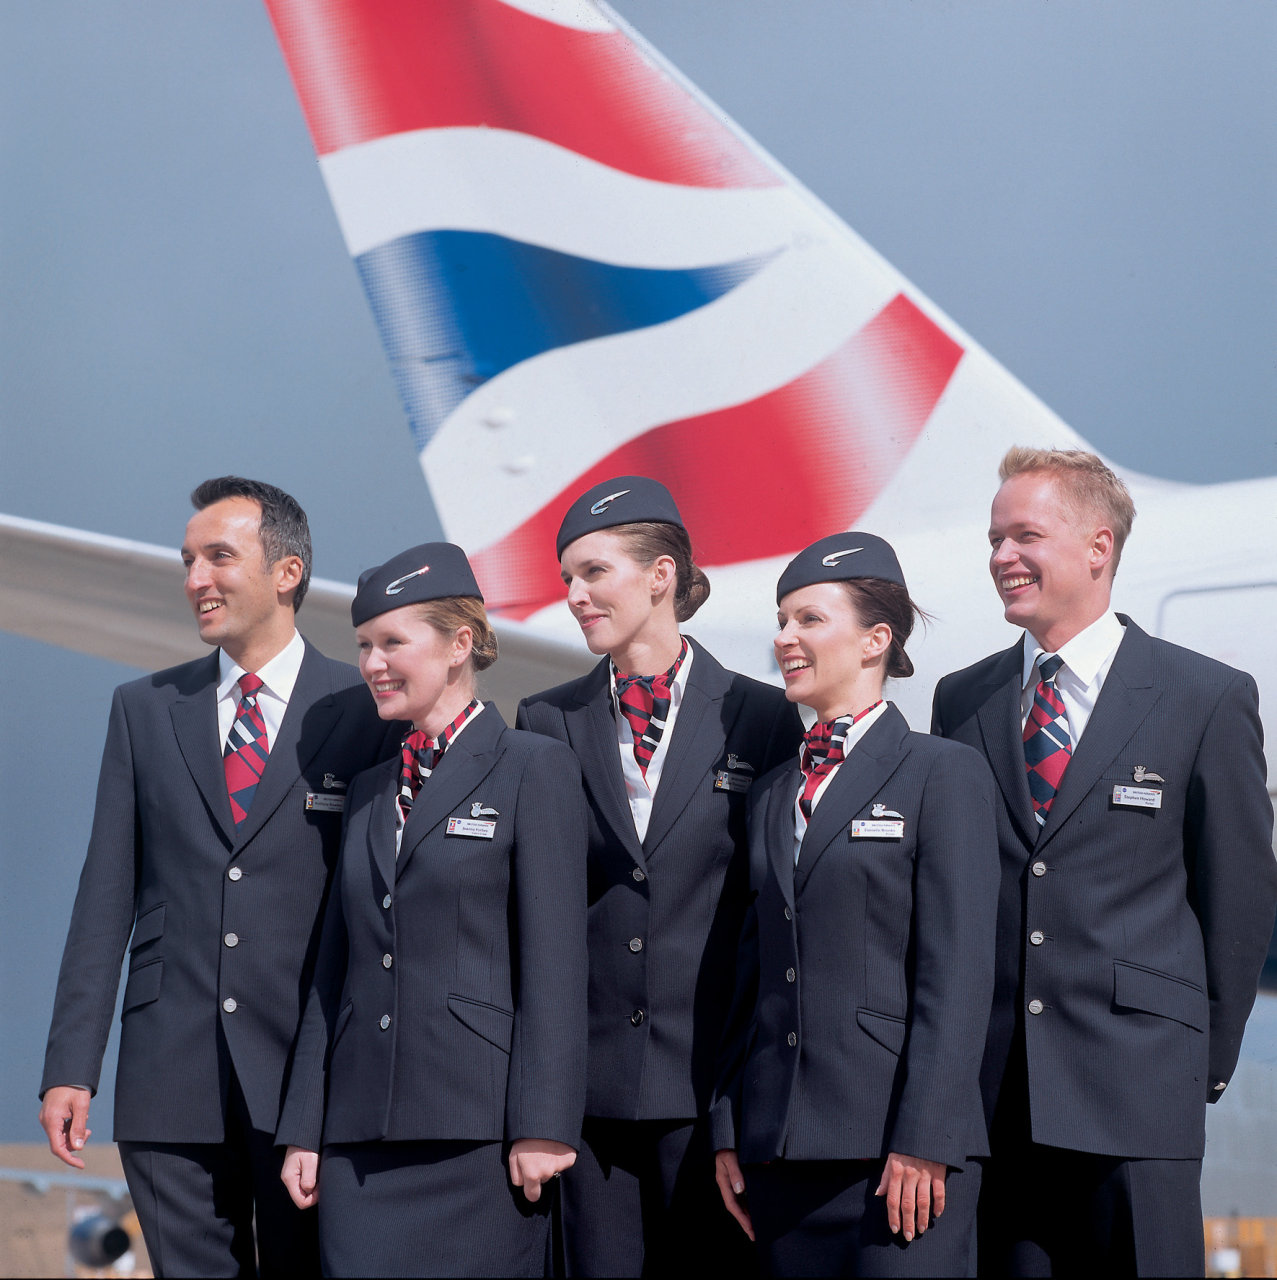 a review of the article british airways sacks pilot seen drinking before flight Zimbabwean woman banned for life by british she been drinking or making racist remarks british airways british airways sacks stewardess.